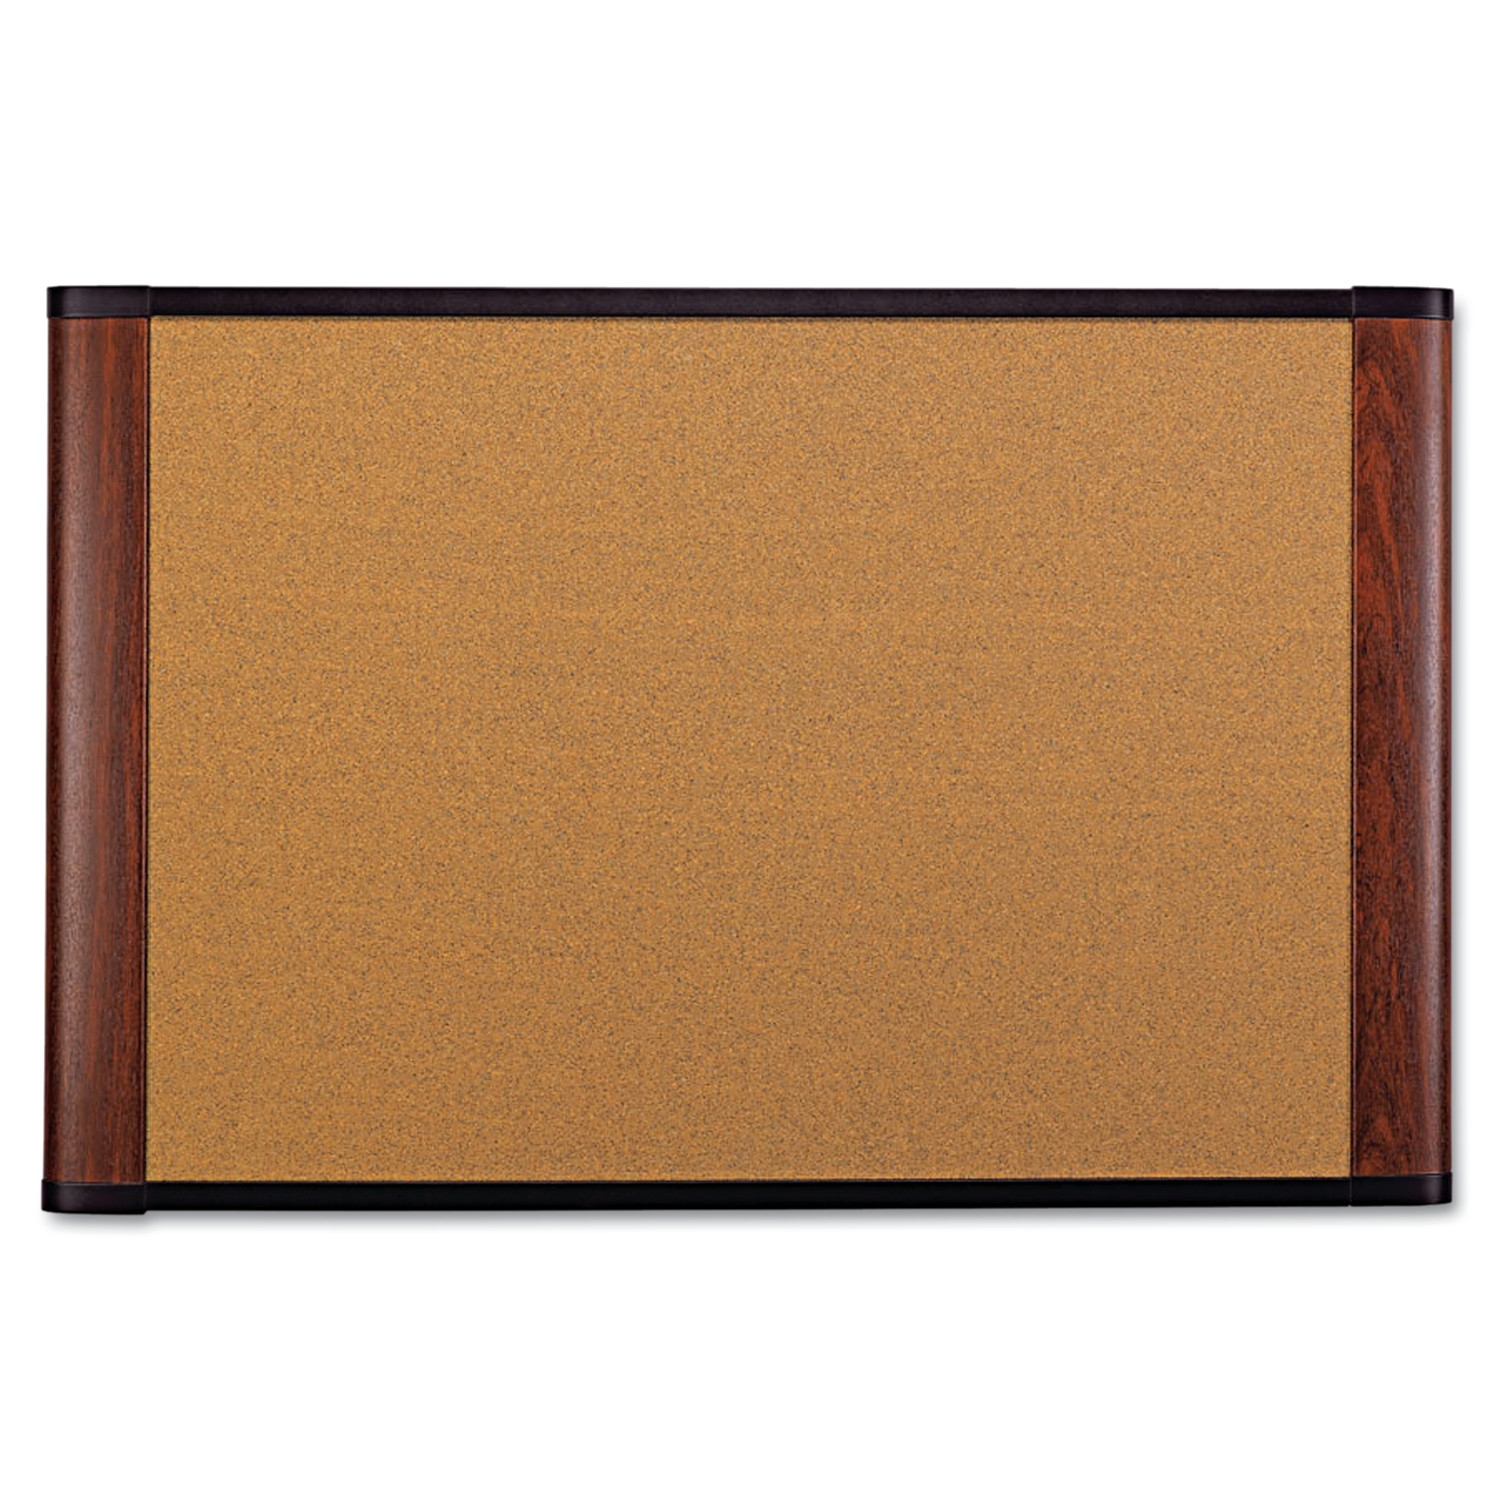 """3M Cork Bulletin Board, 72"""" x 48\ by 3M/COMMERCIAL TAPE DIV."""